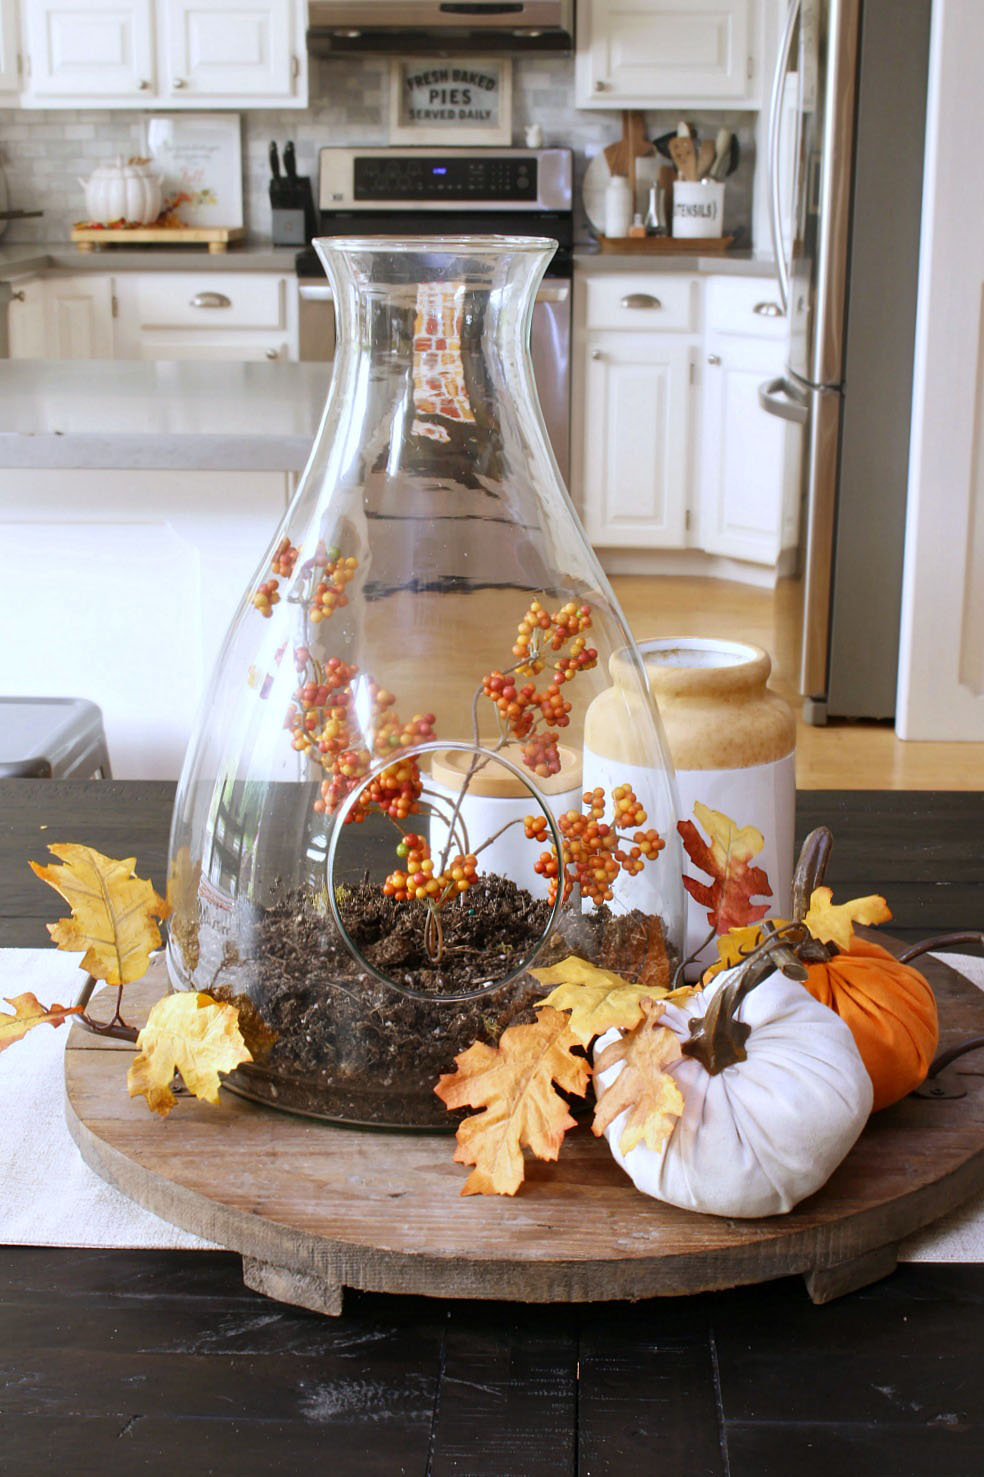 fall decorating decor kitchen easy simple centerpiece display tours inspiration inspire monday table clean decorate sammy spot never dog he